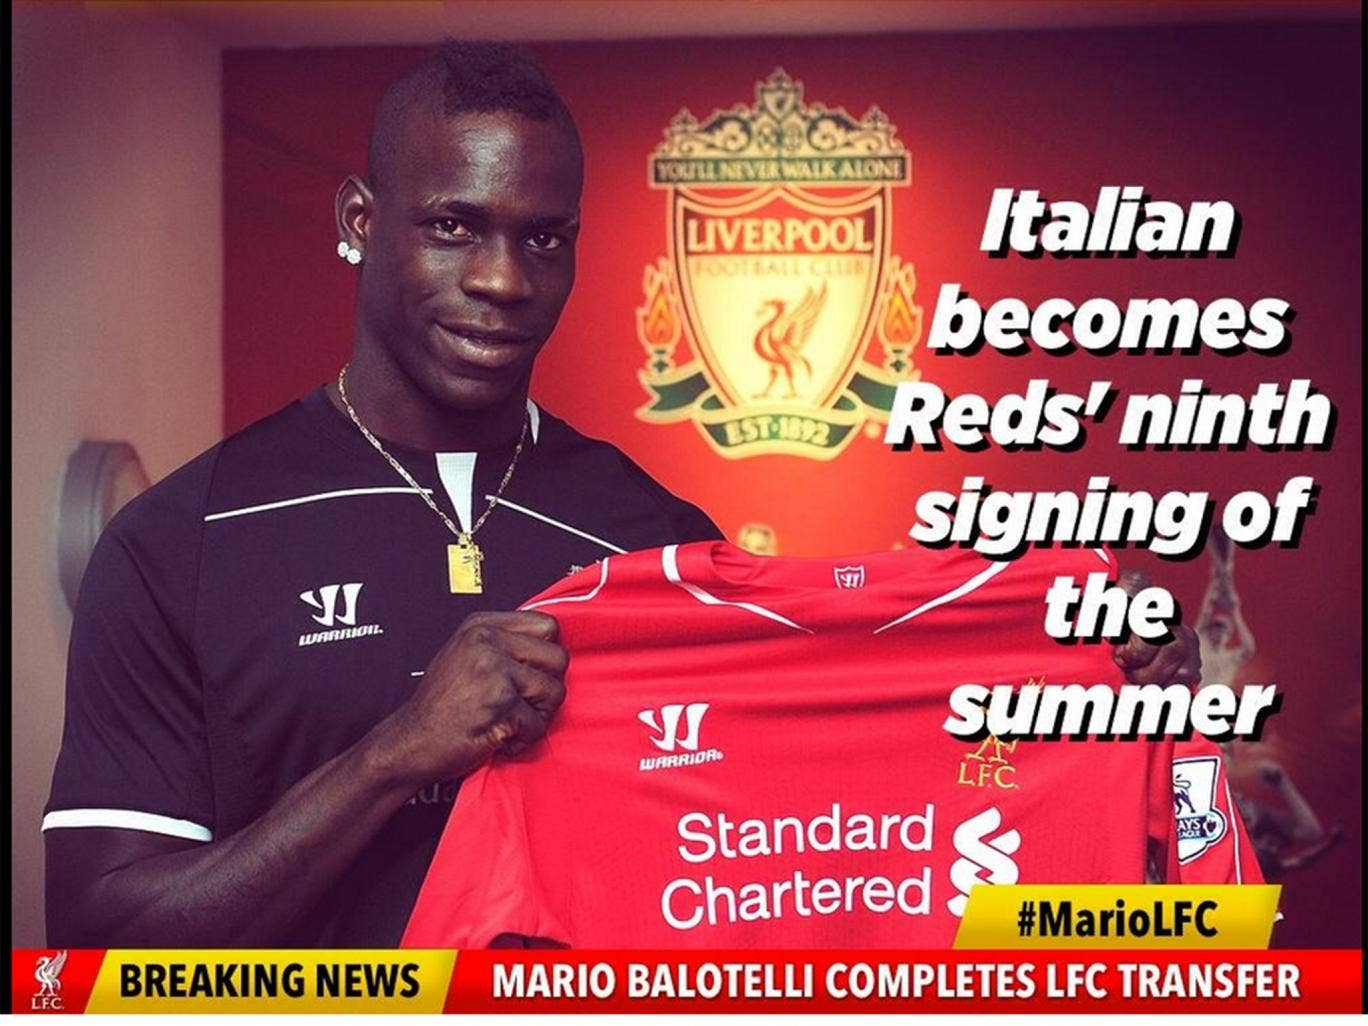 Liverpool confirm the Balotelli transfer on Twitter